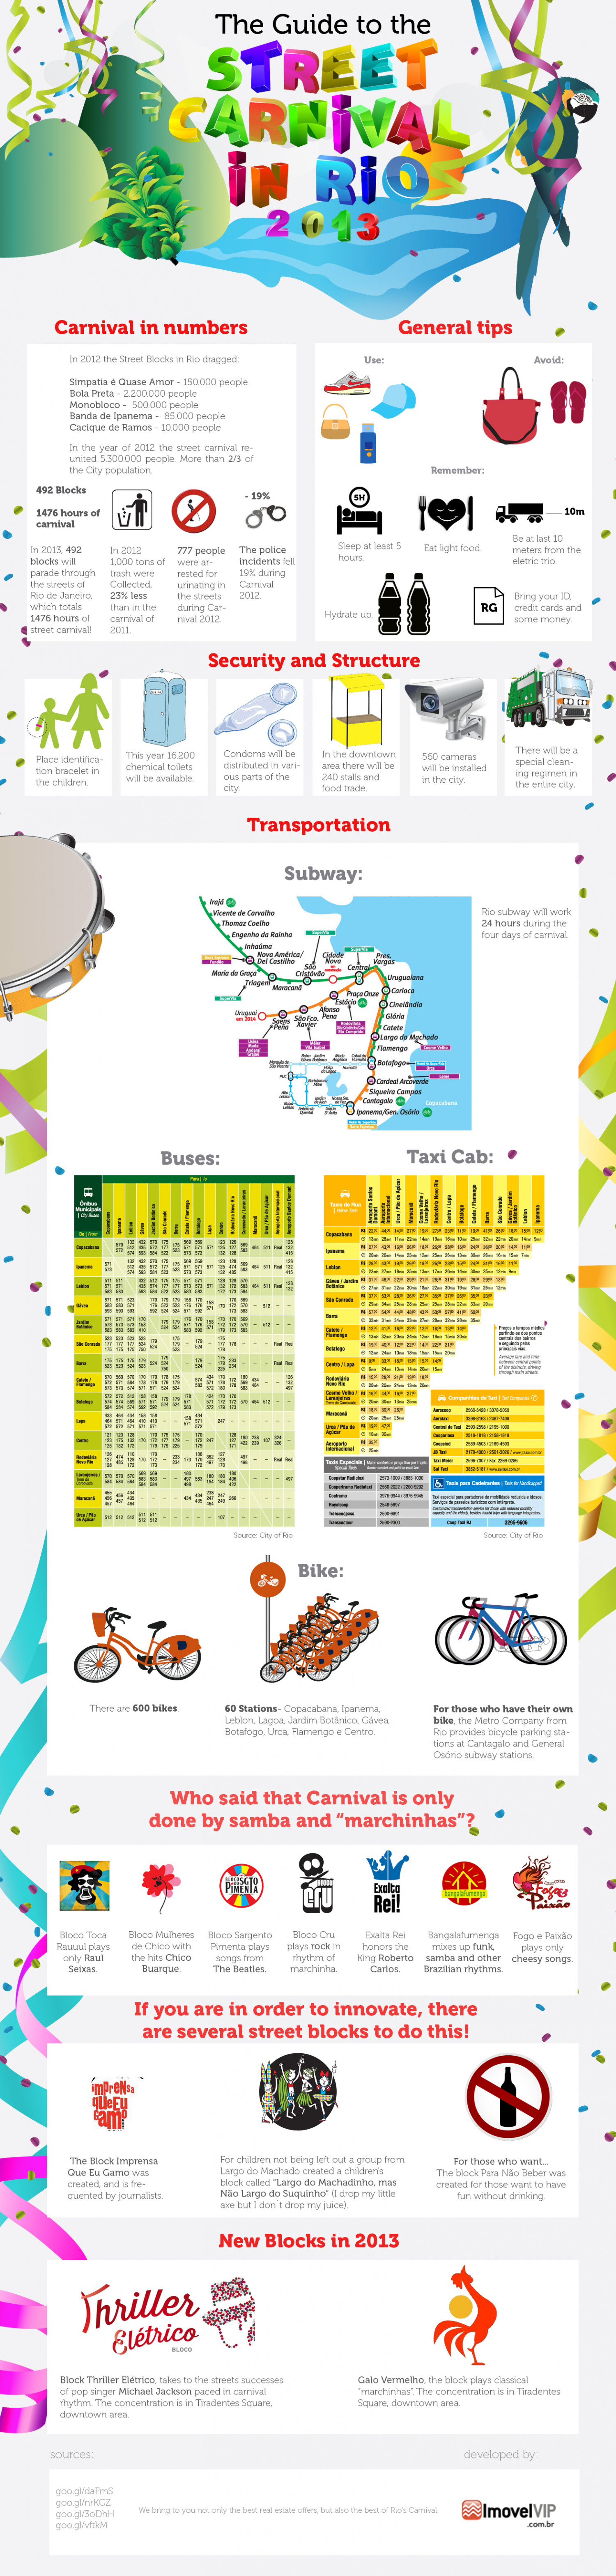 The Guide to the Street Carnival in Rio 2013 Infographic